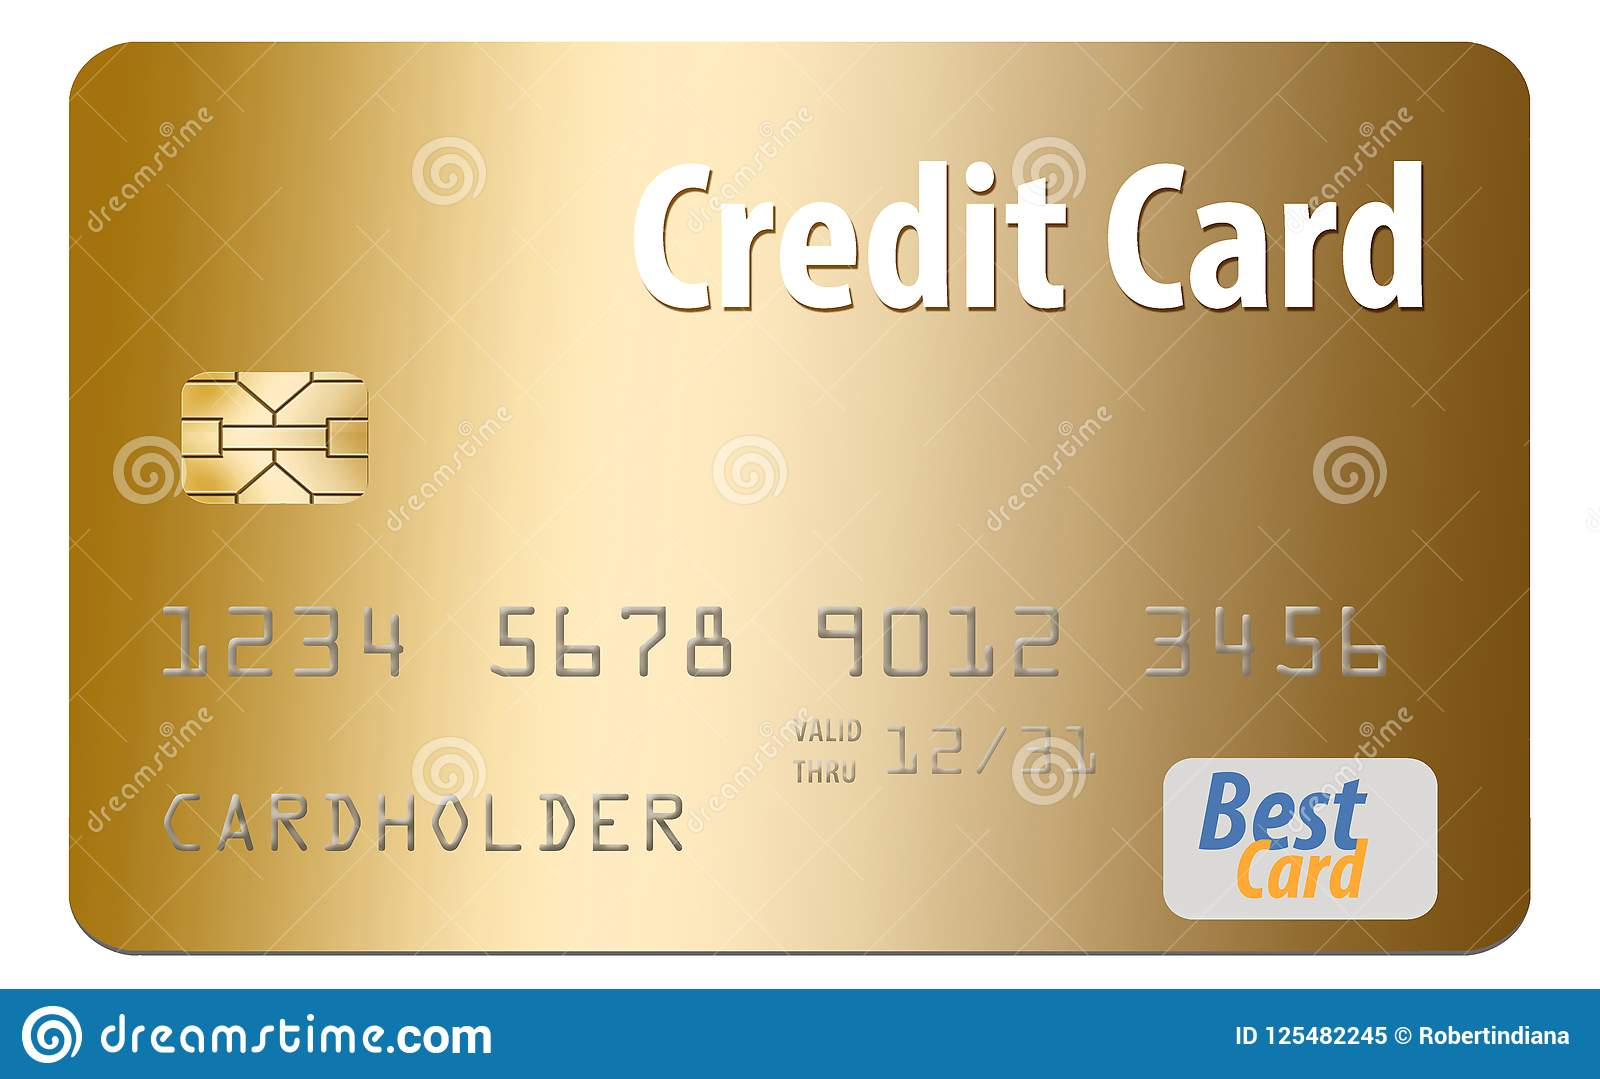 Here is a generic credit card isolated on al white background.